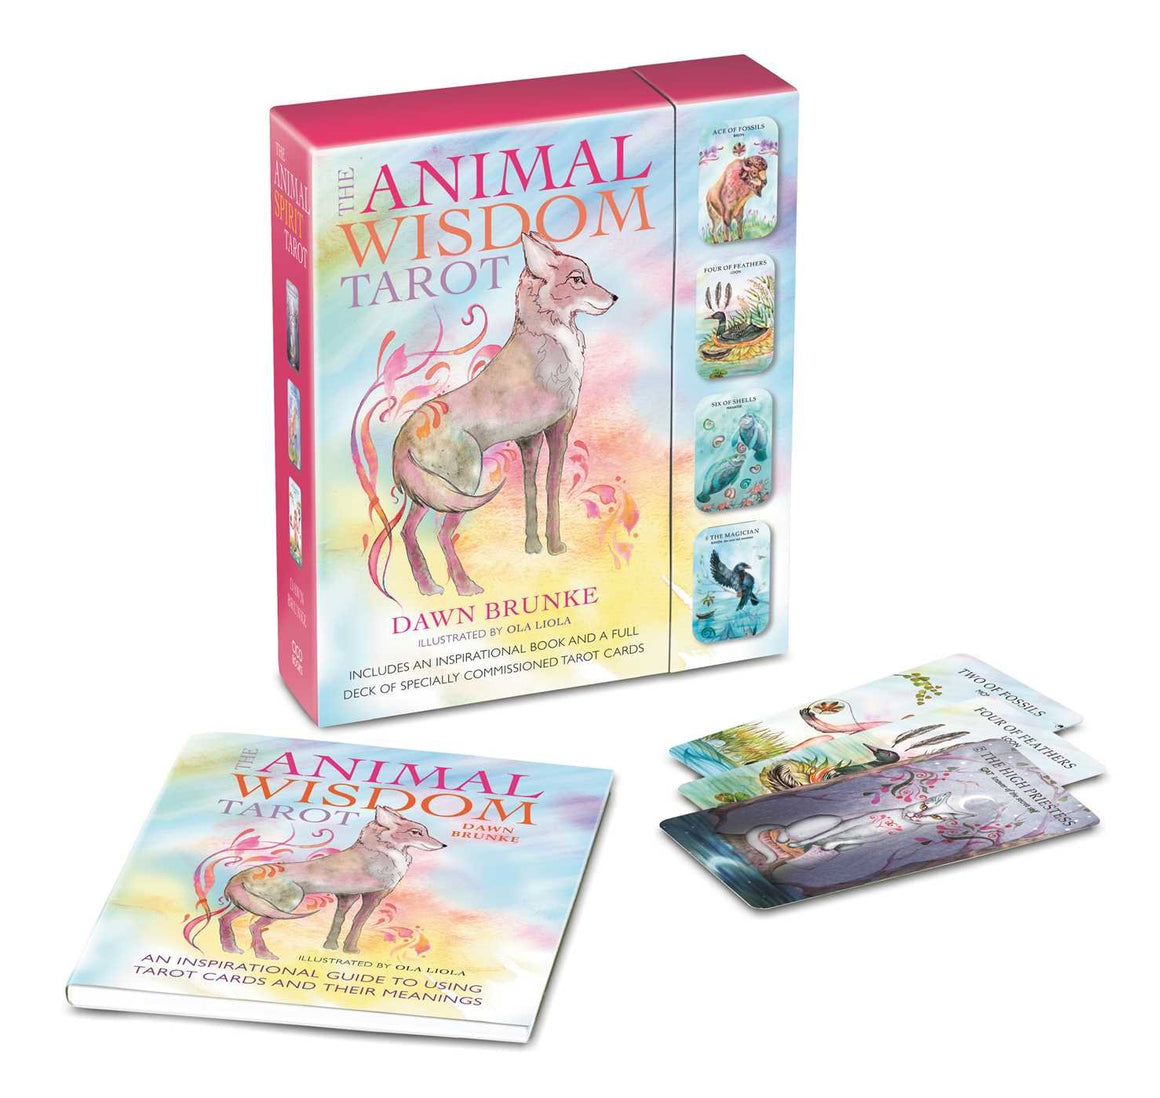 Animal Wisdom Tarot by Dawn Brunke